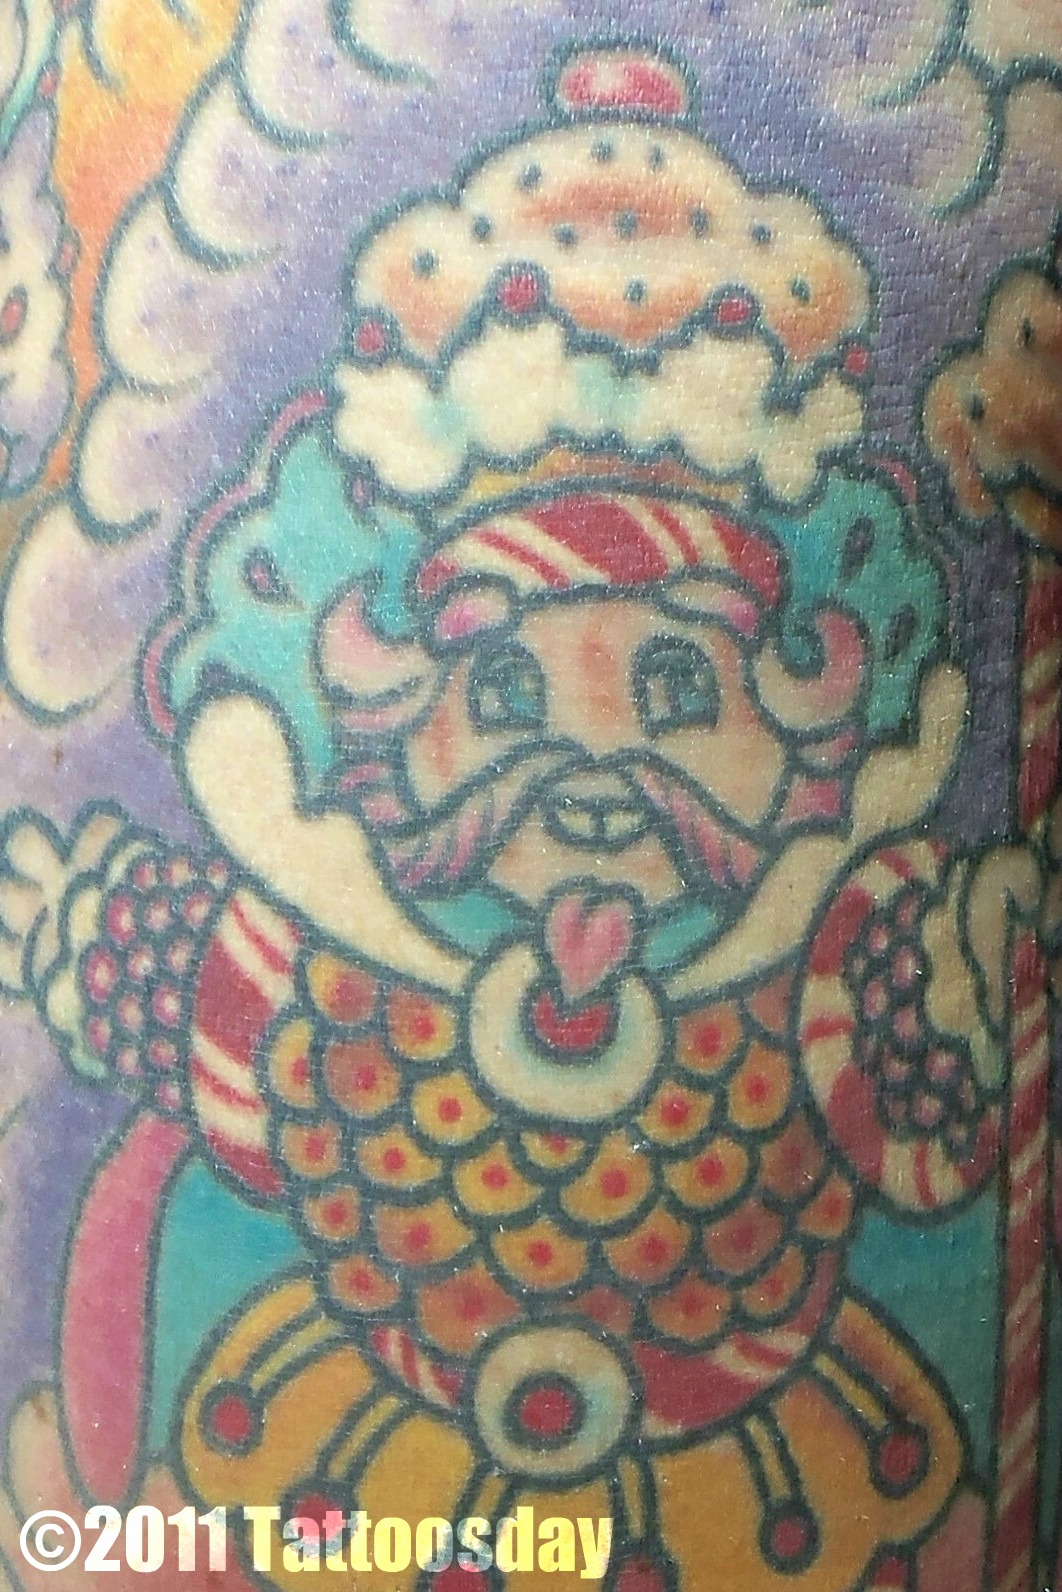 Tattoosday A Tattoo Blog Nicole Takes Us To Candyland Ideas And Designs